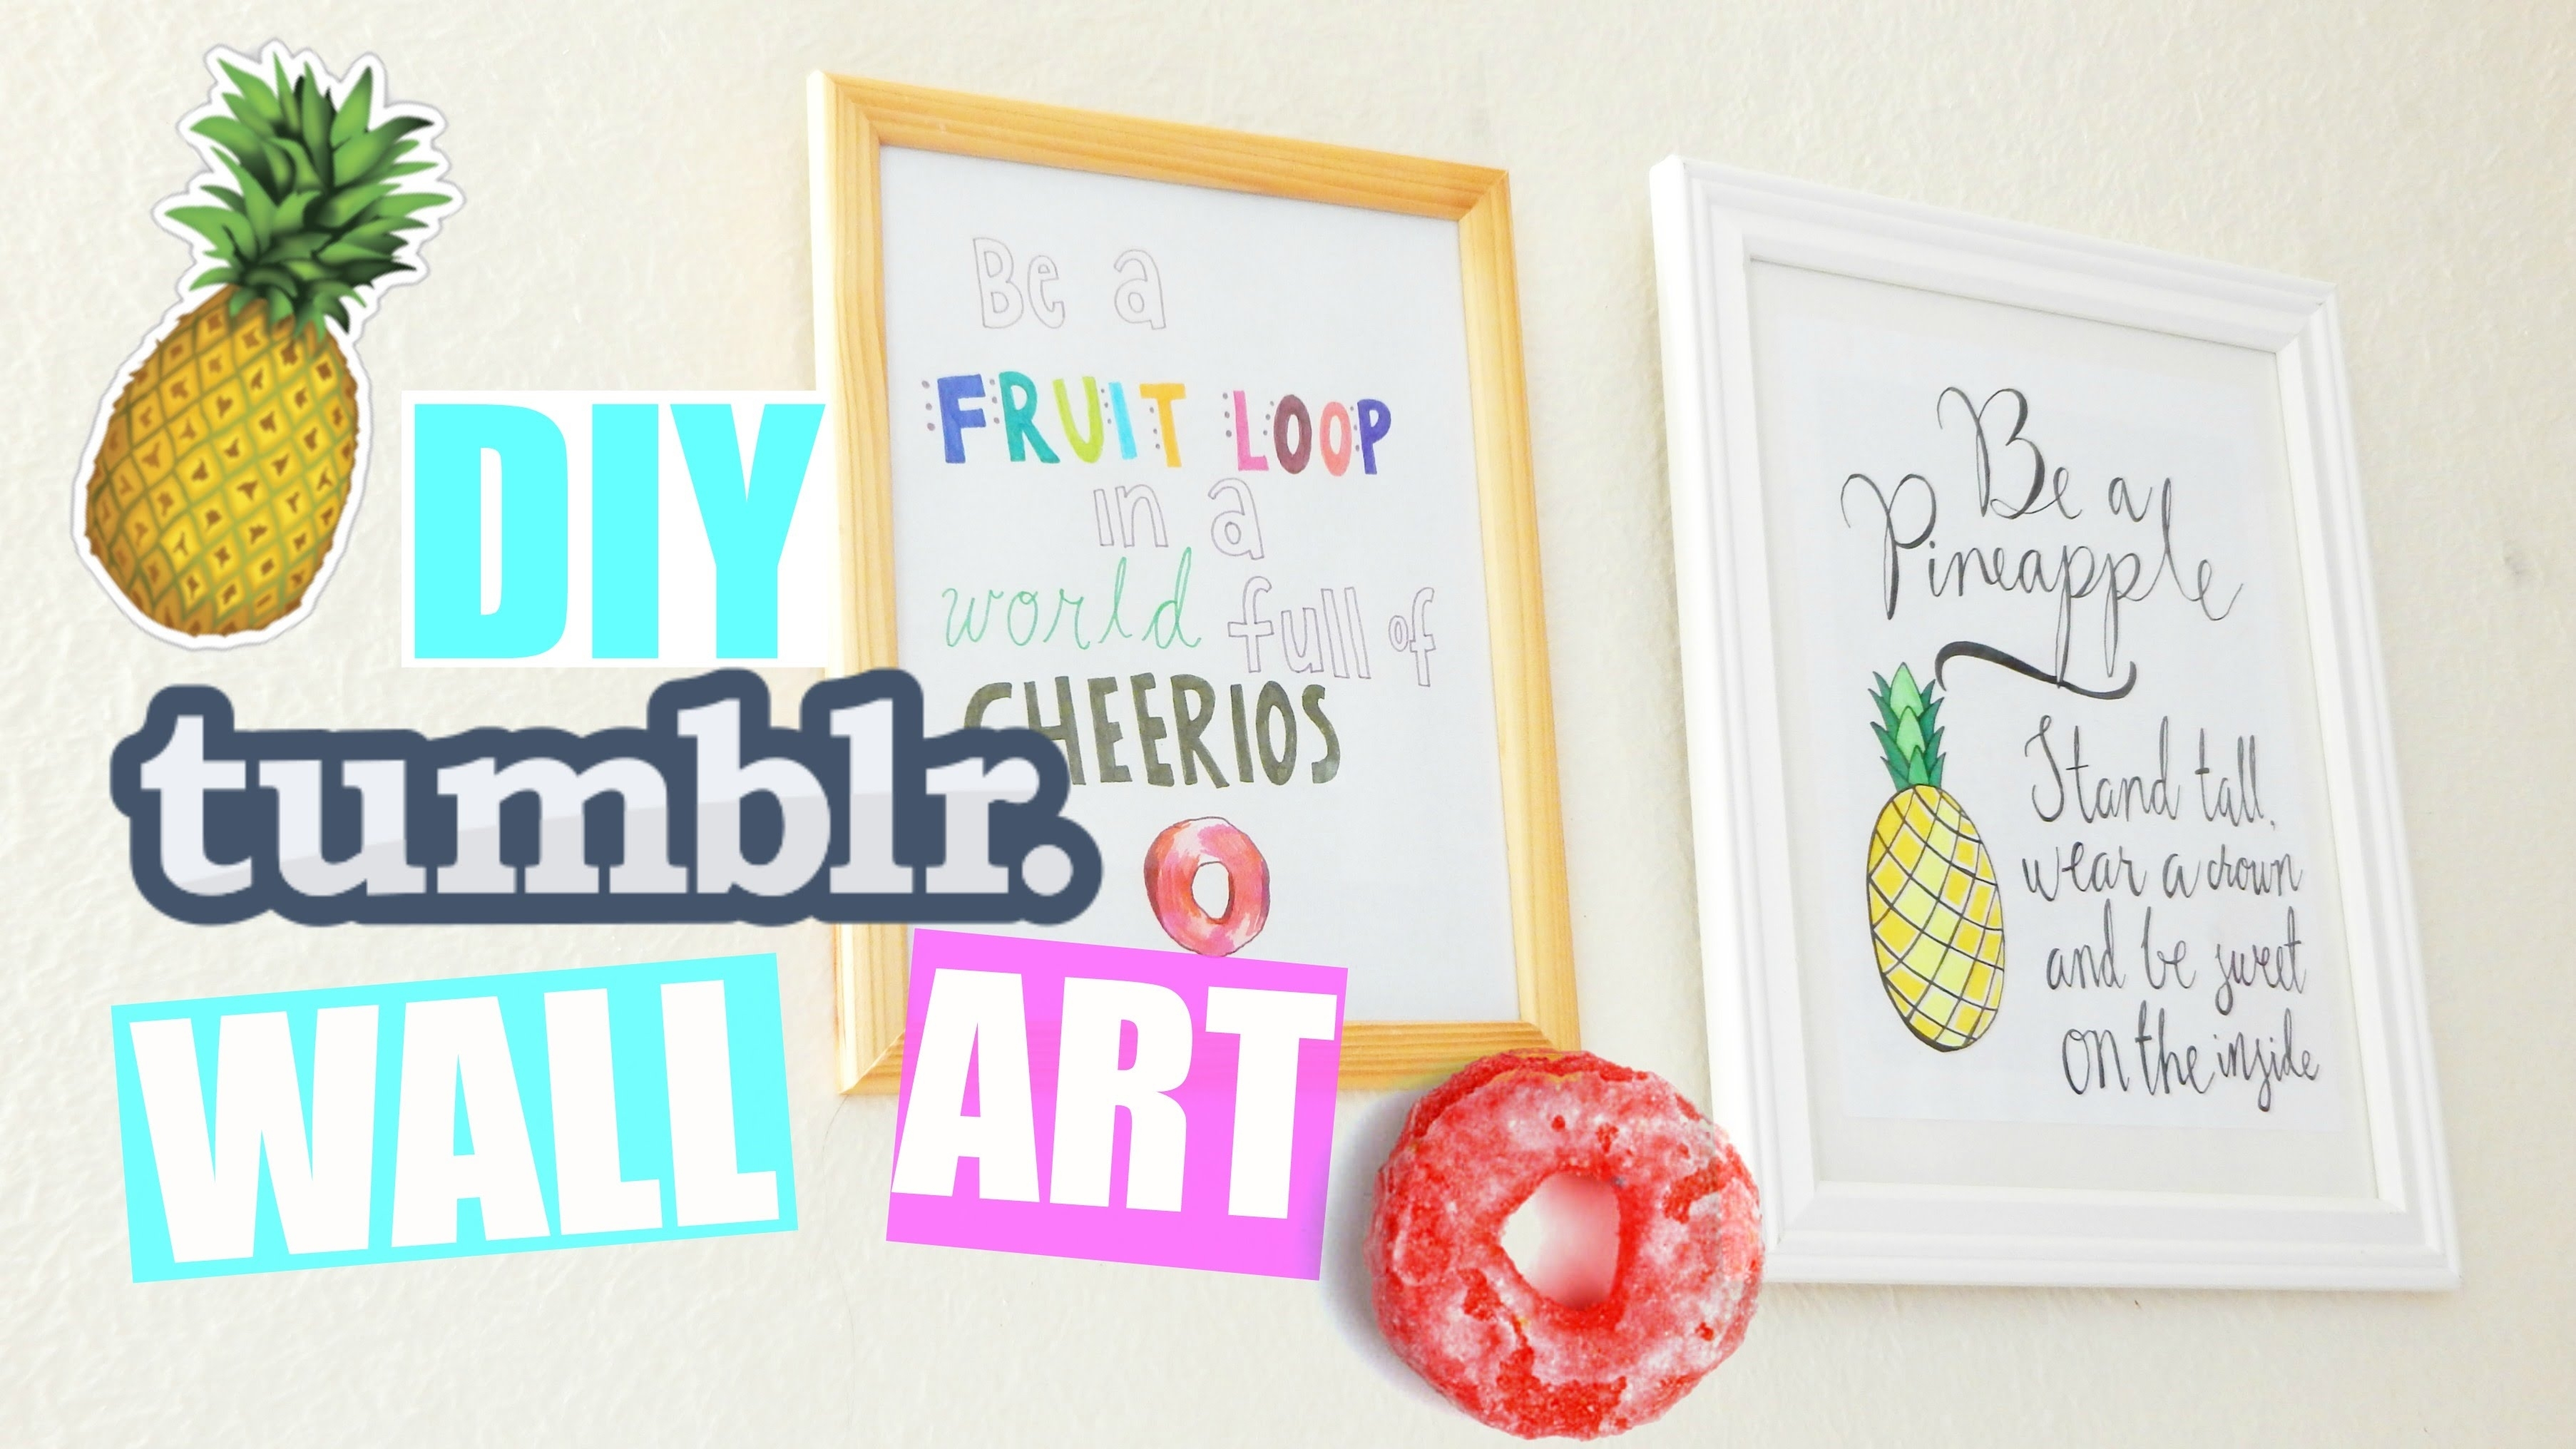 Diy Quote Wall Art Room Decor! |pastelpandaz – Youtube Pertaining To Most Current Wall Art Quotes (Gallery 16 of 20)